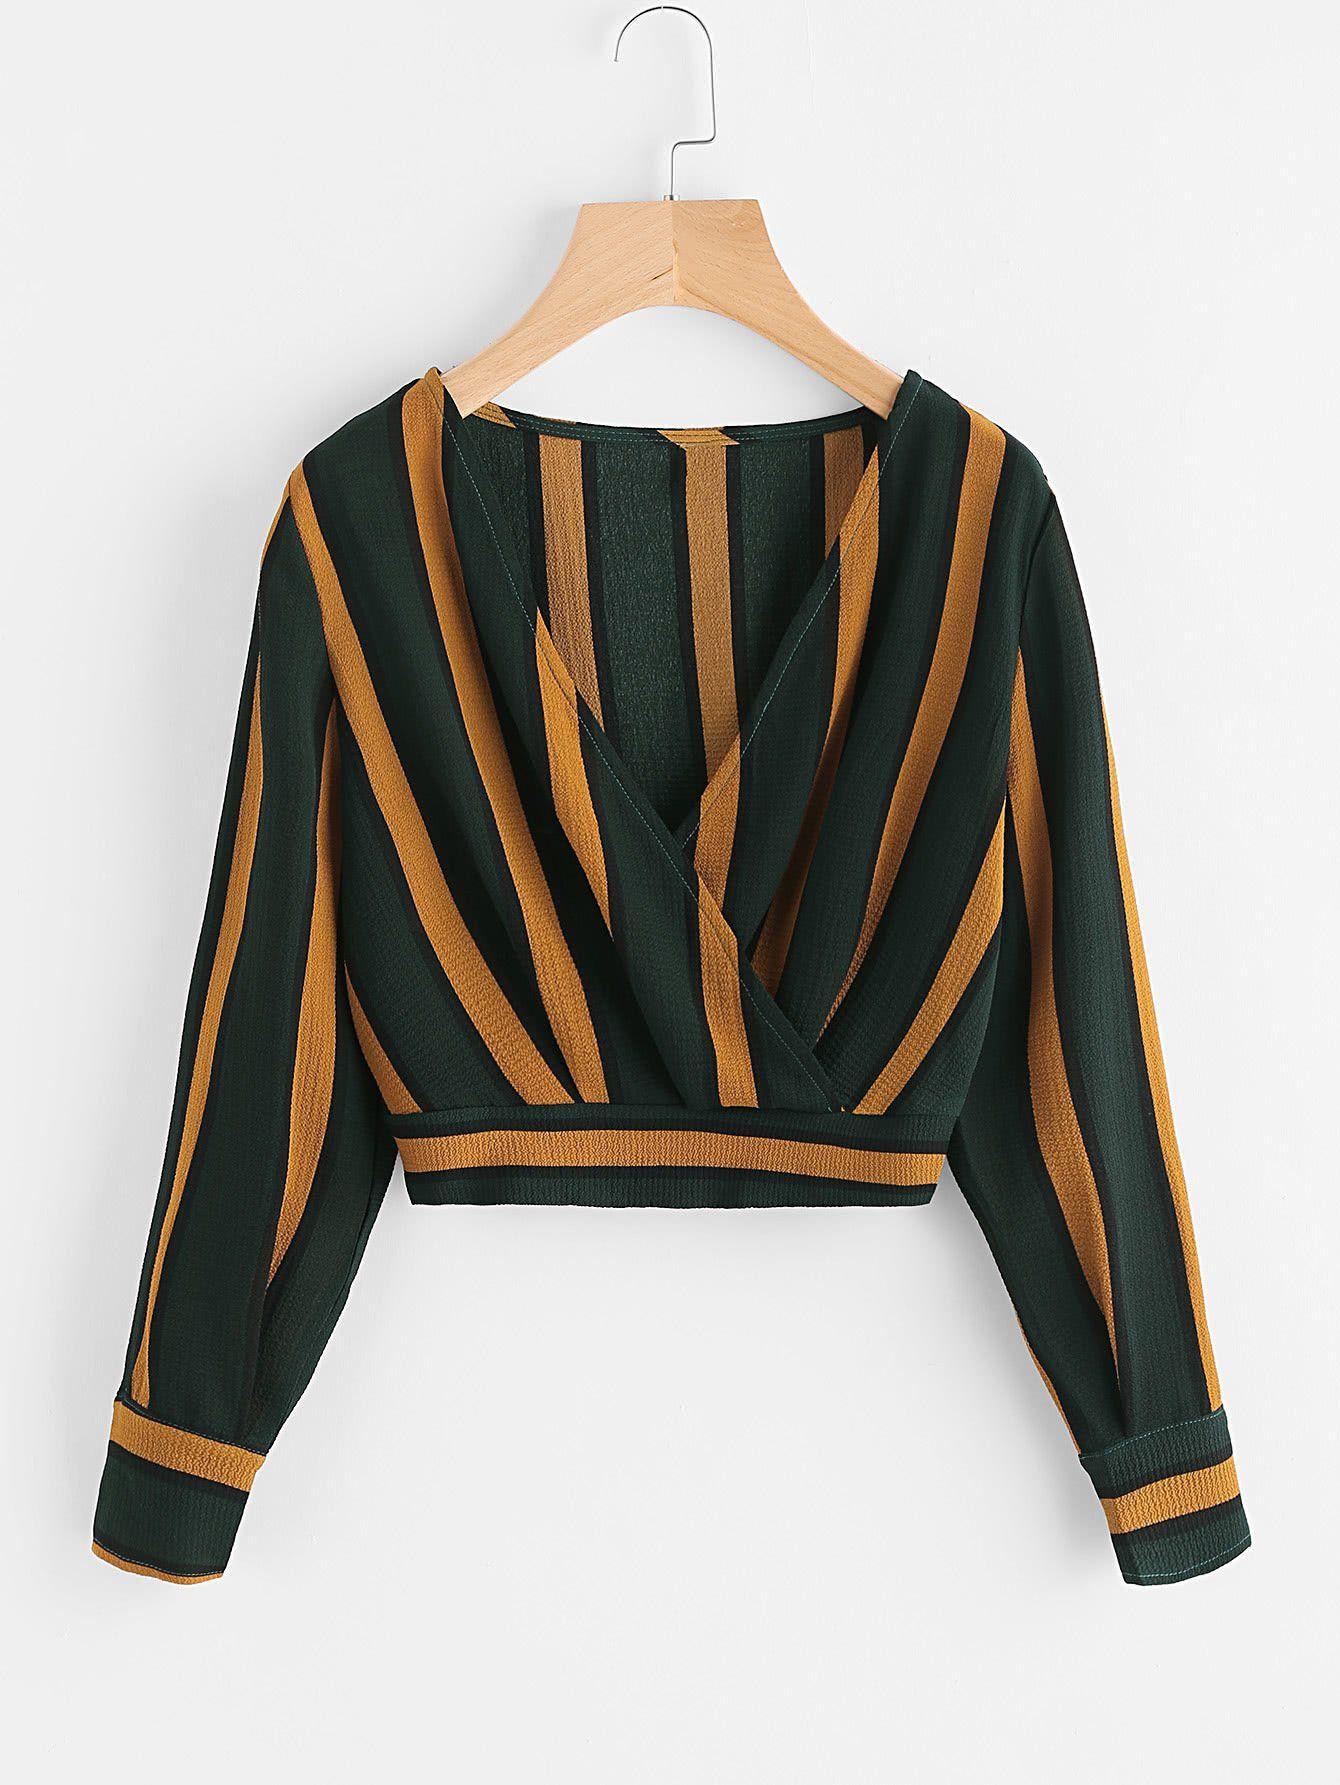 d4e61192ad061 Green and Yellow Striped V-Neck Surplice Crop Top